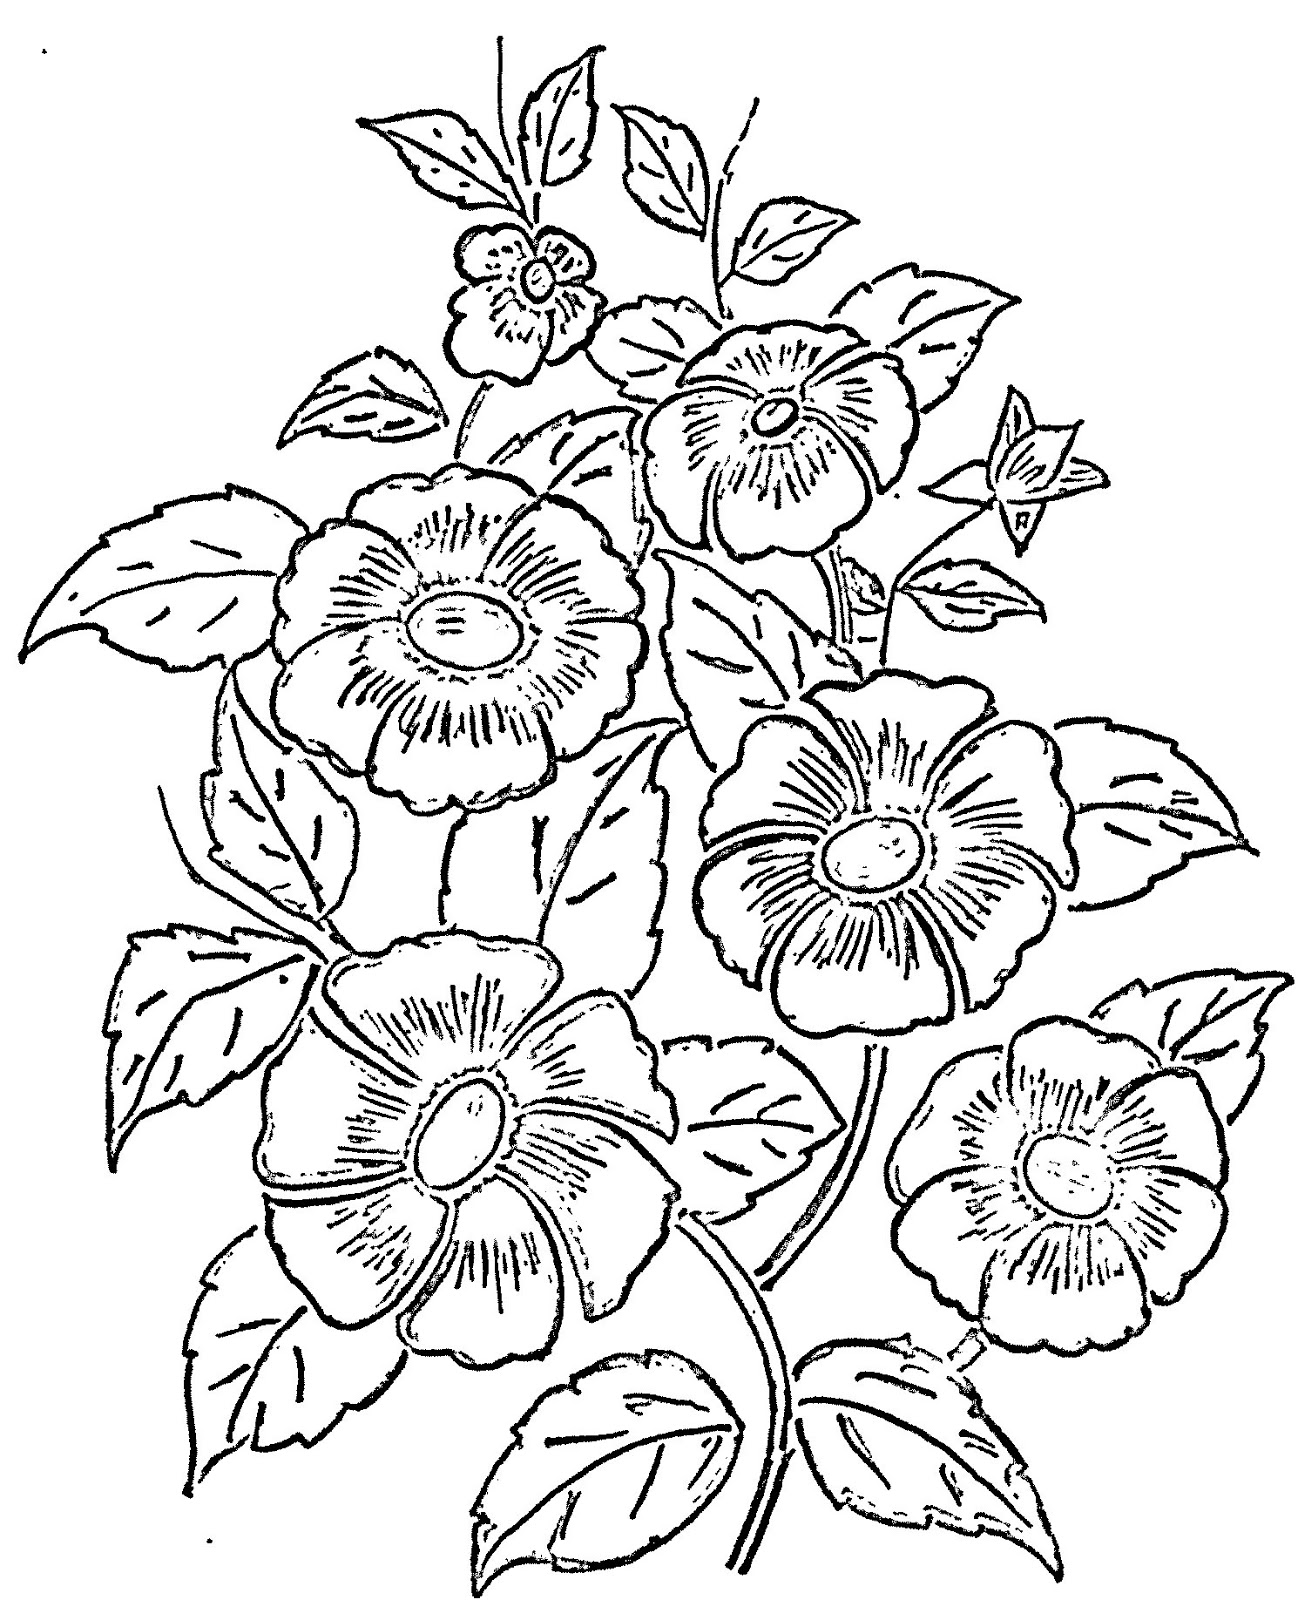 Flower Designs Patterns To Draw Flowers Healthy